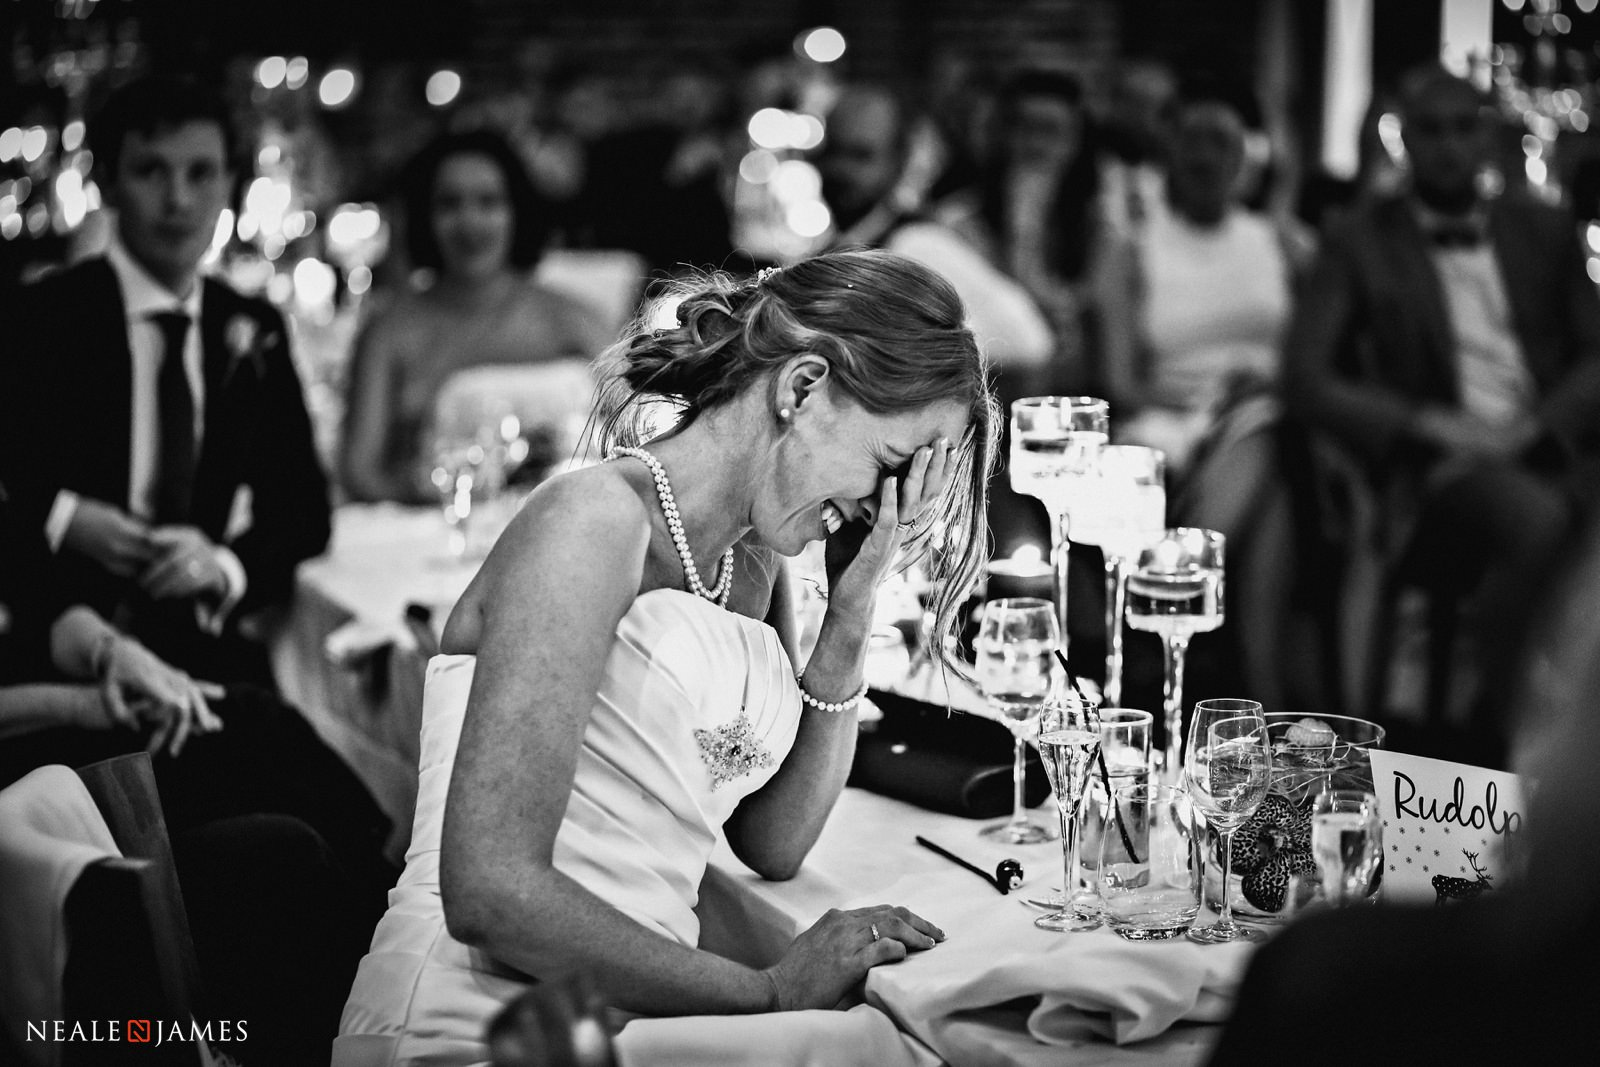 A bride puts her head in her hands and smiles during the speeches at her wedding breakfast at Wasing Park